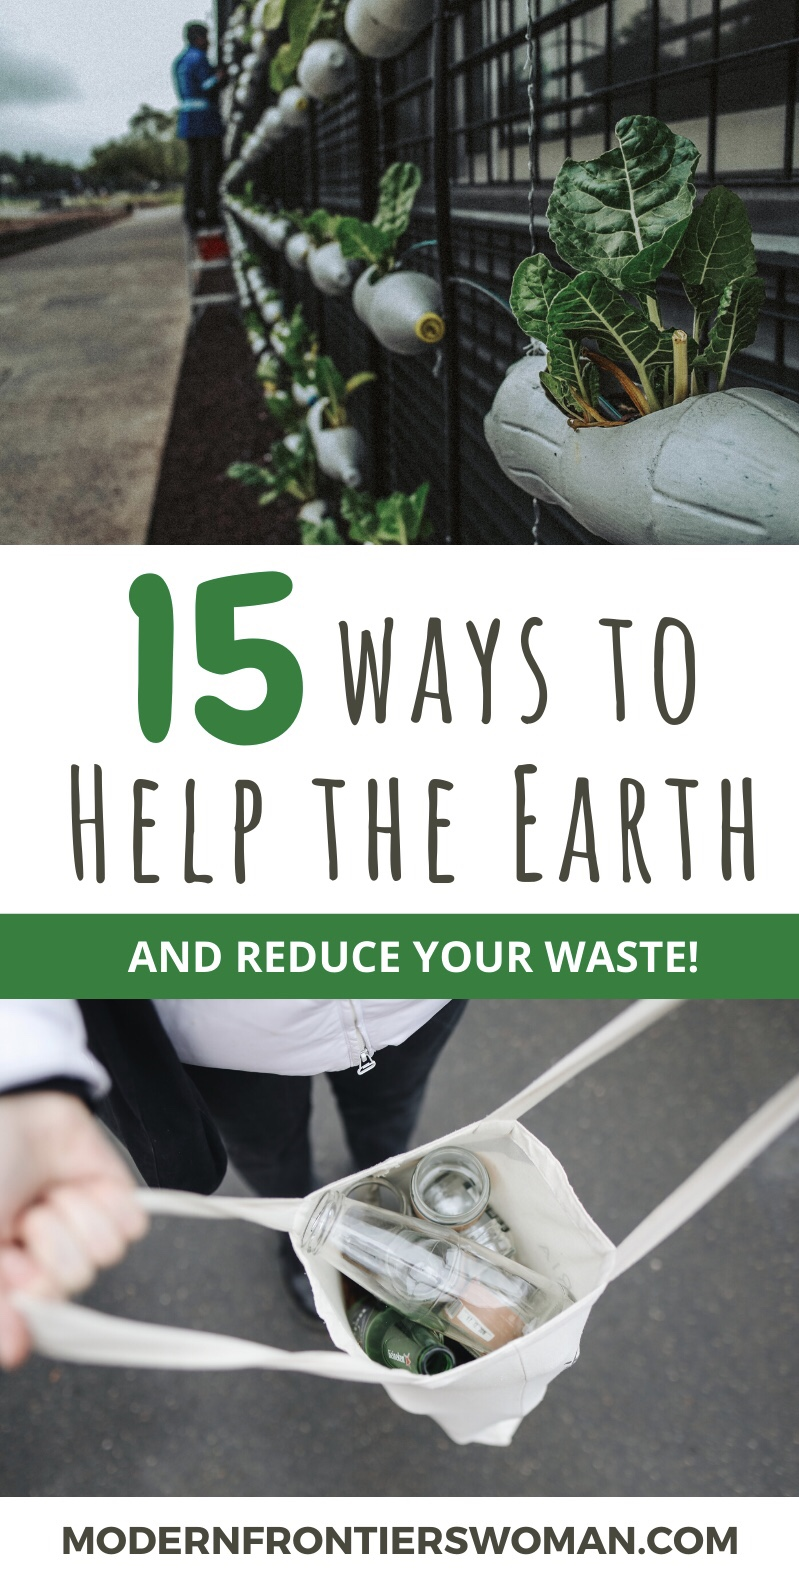 15 Ways to Help the Earth and Reduce your Waste